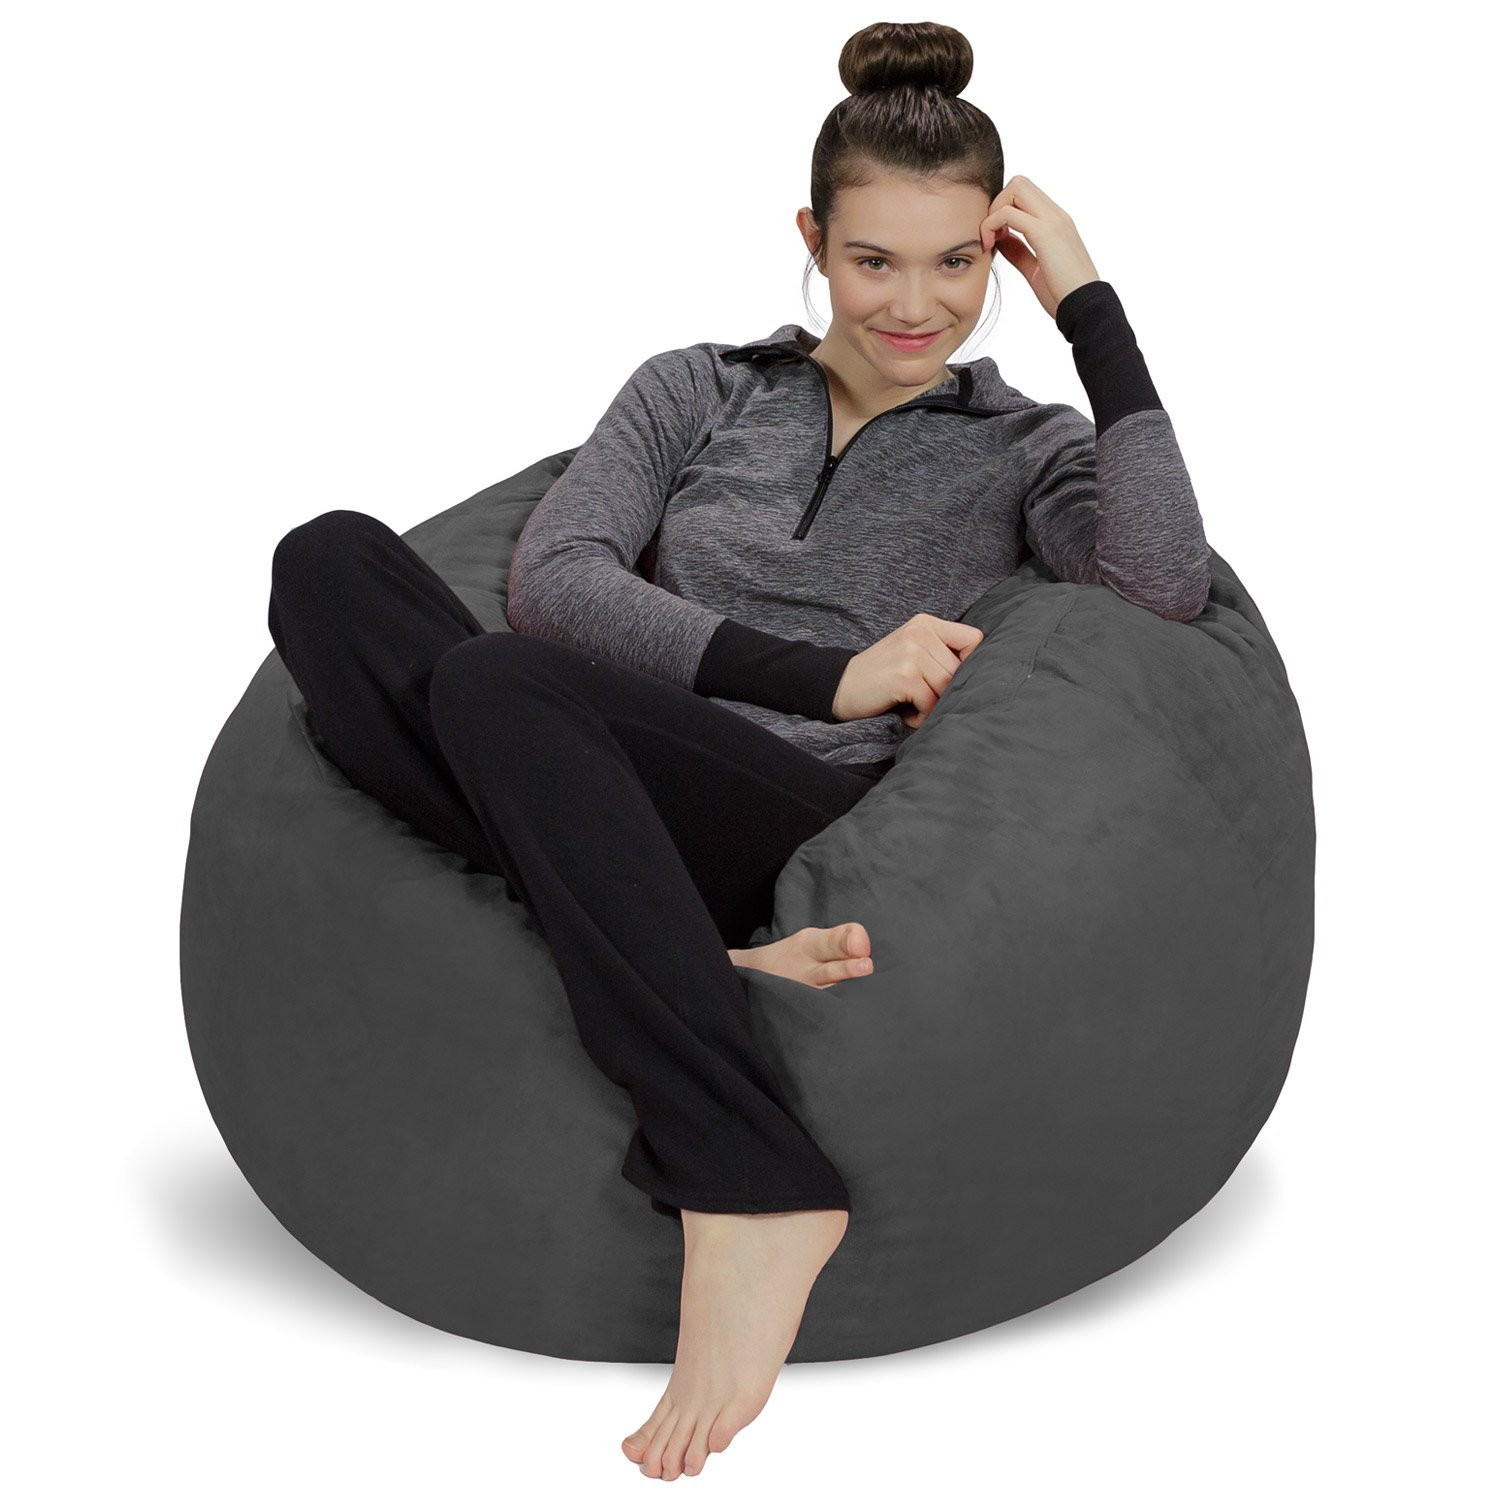 Sofa Sack-Bean BagsBean Bag Chair, 3', Charcoal